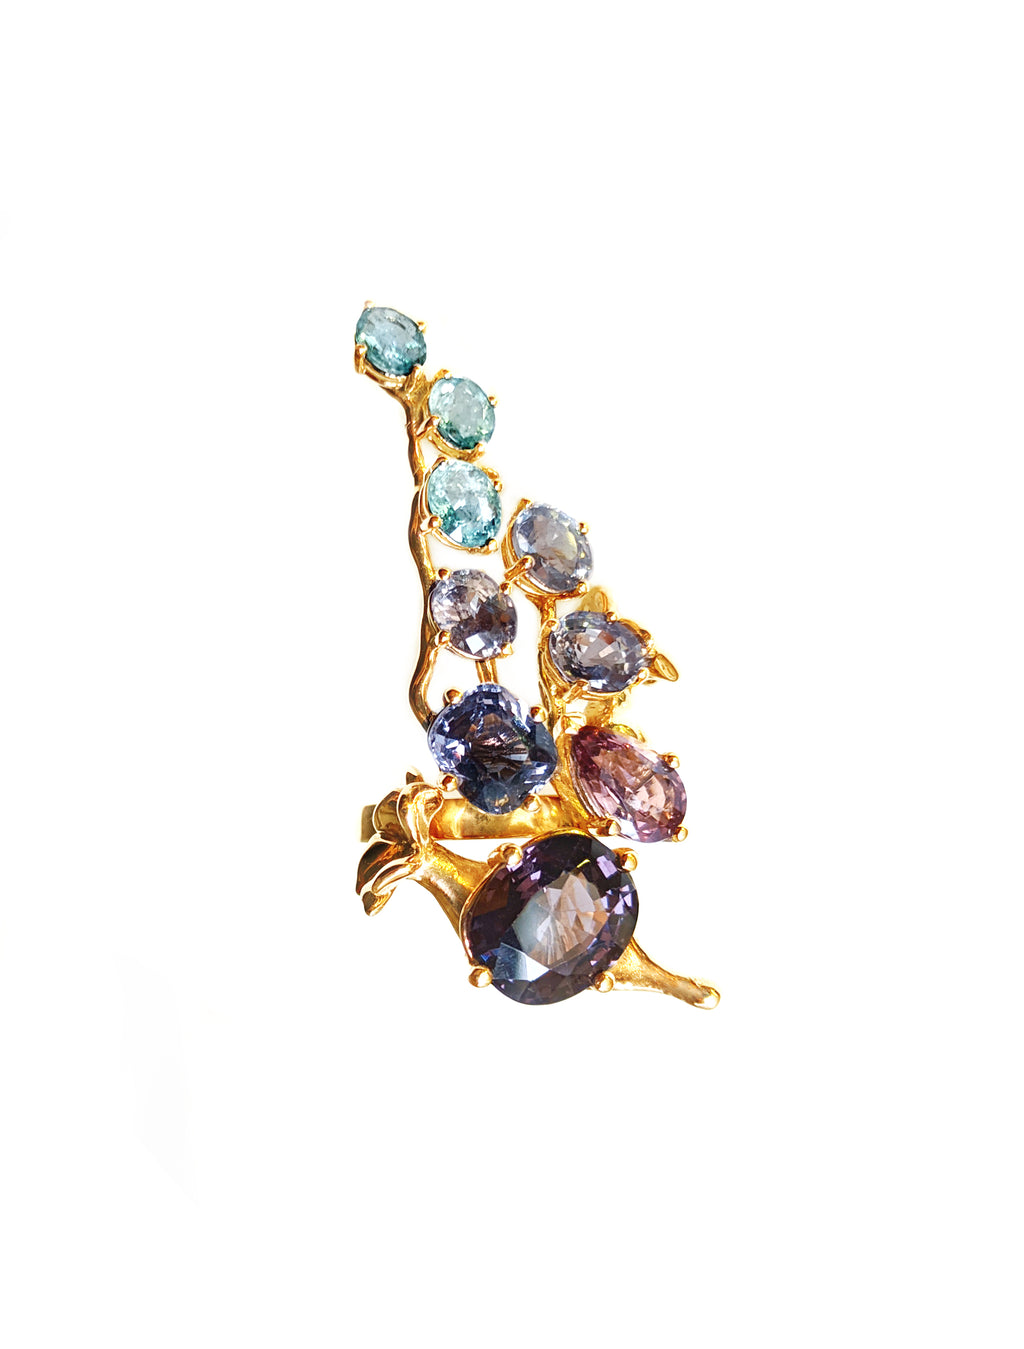 Rose Gold Tobacco Cocktail Ring with Sapphires, Spinels and Paraiba Tourmalines